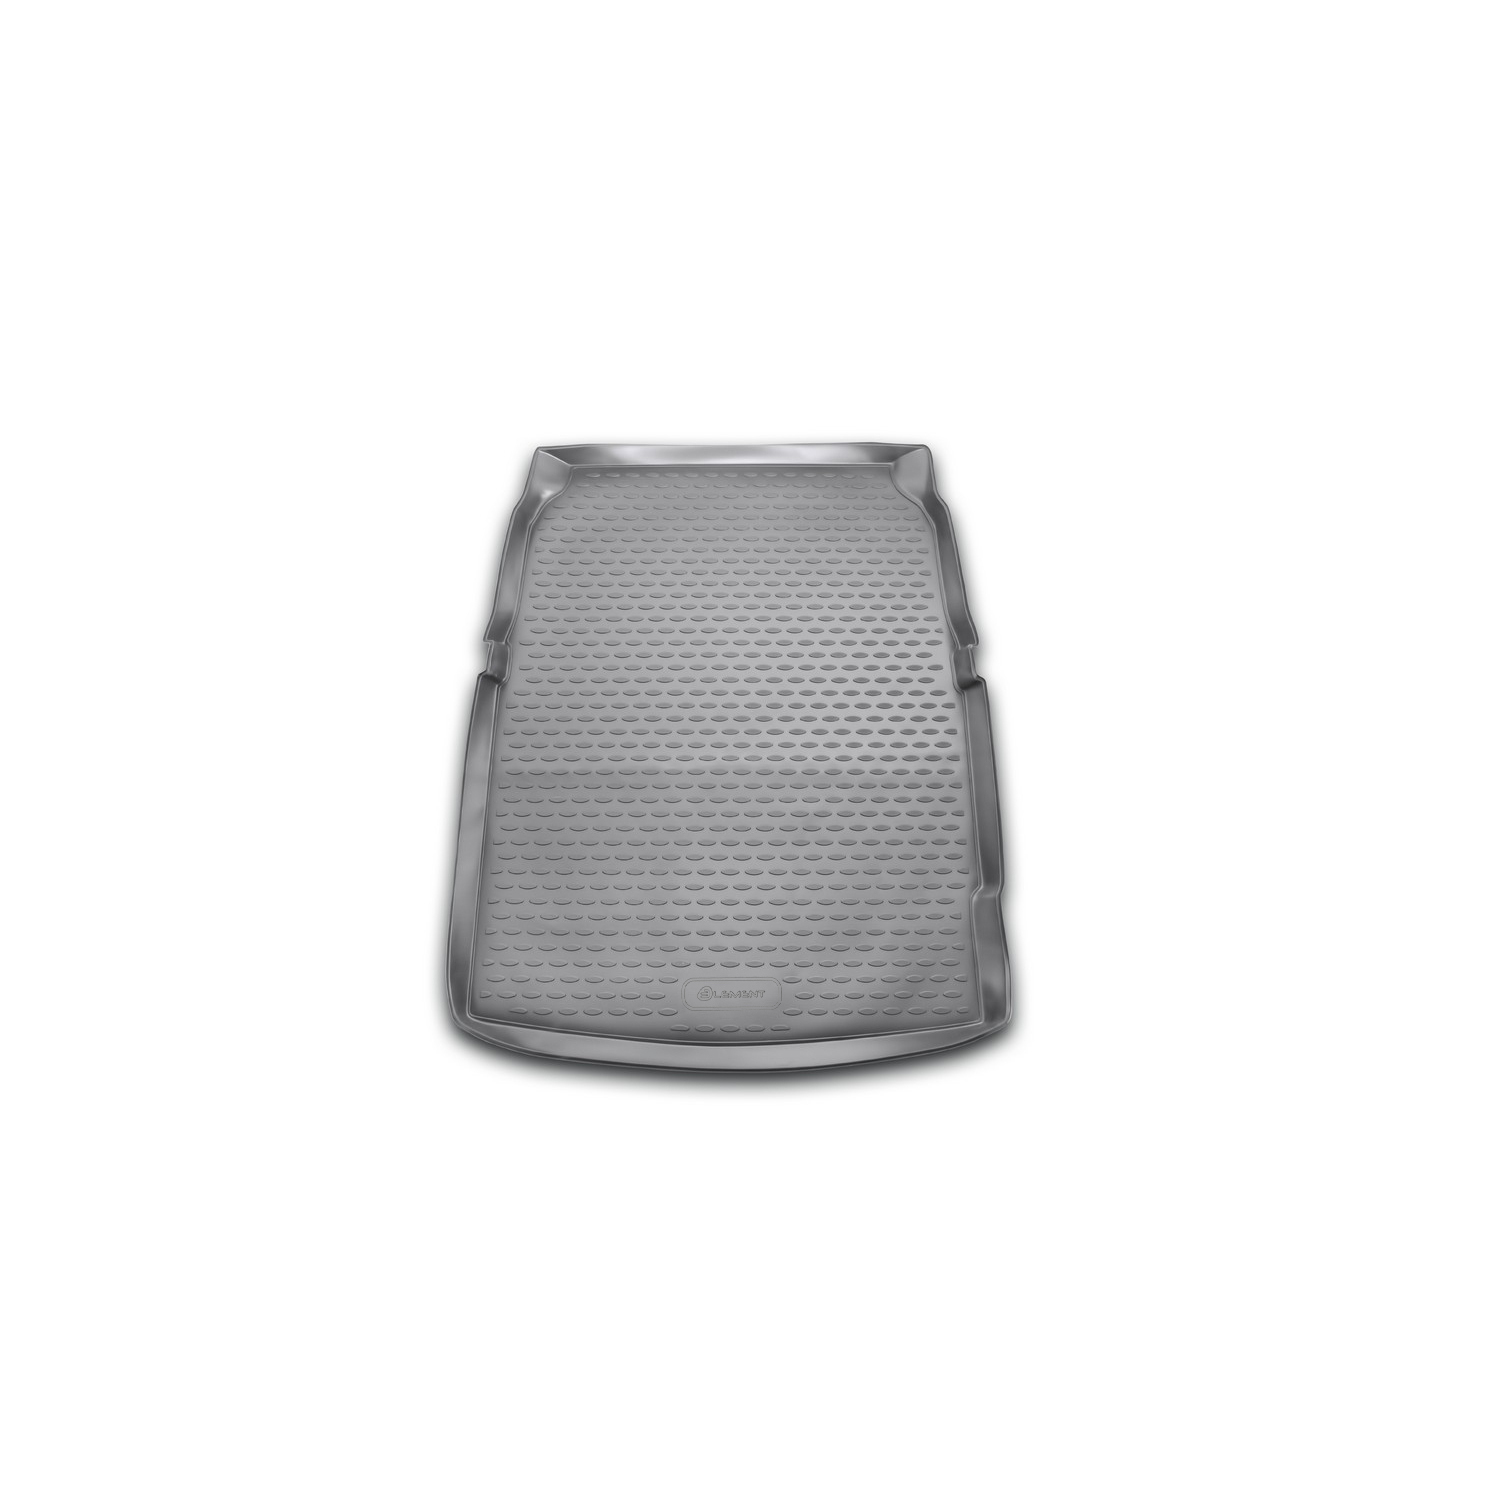 Trunk Mat For BMW 5 (F10), 2010-2017, ETS. NLC.05.32.B10